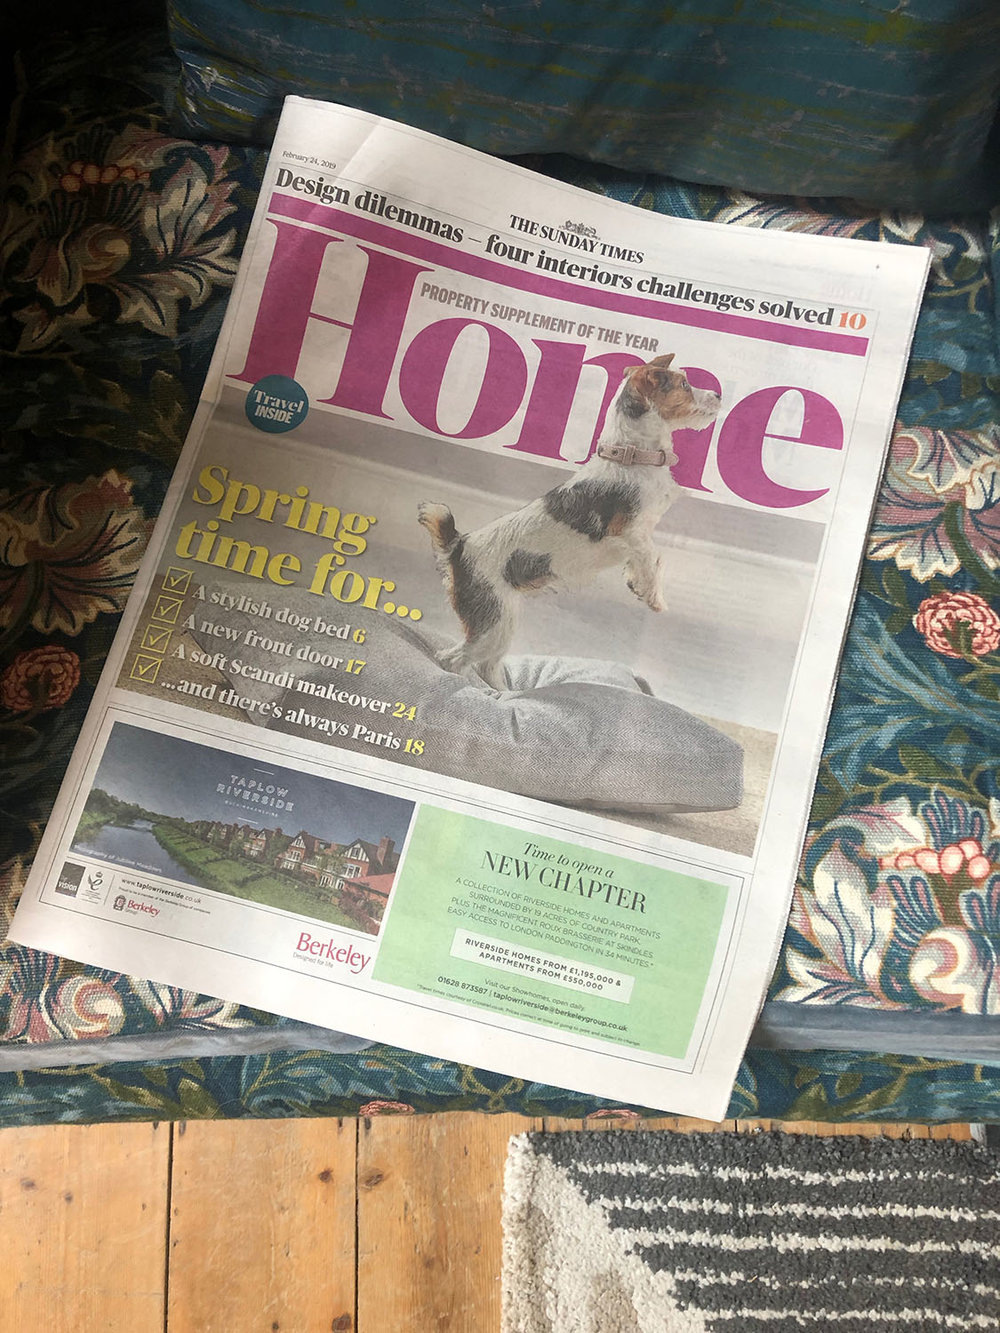 Sunday Times Home featuring My Bedroom Is an Office by Joanna Thornhill 24th Feb 2019 - front cover